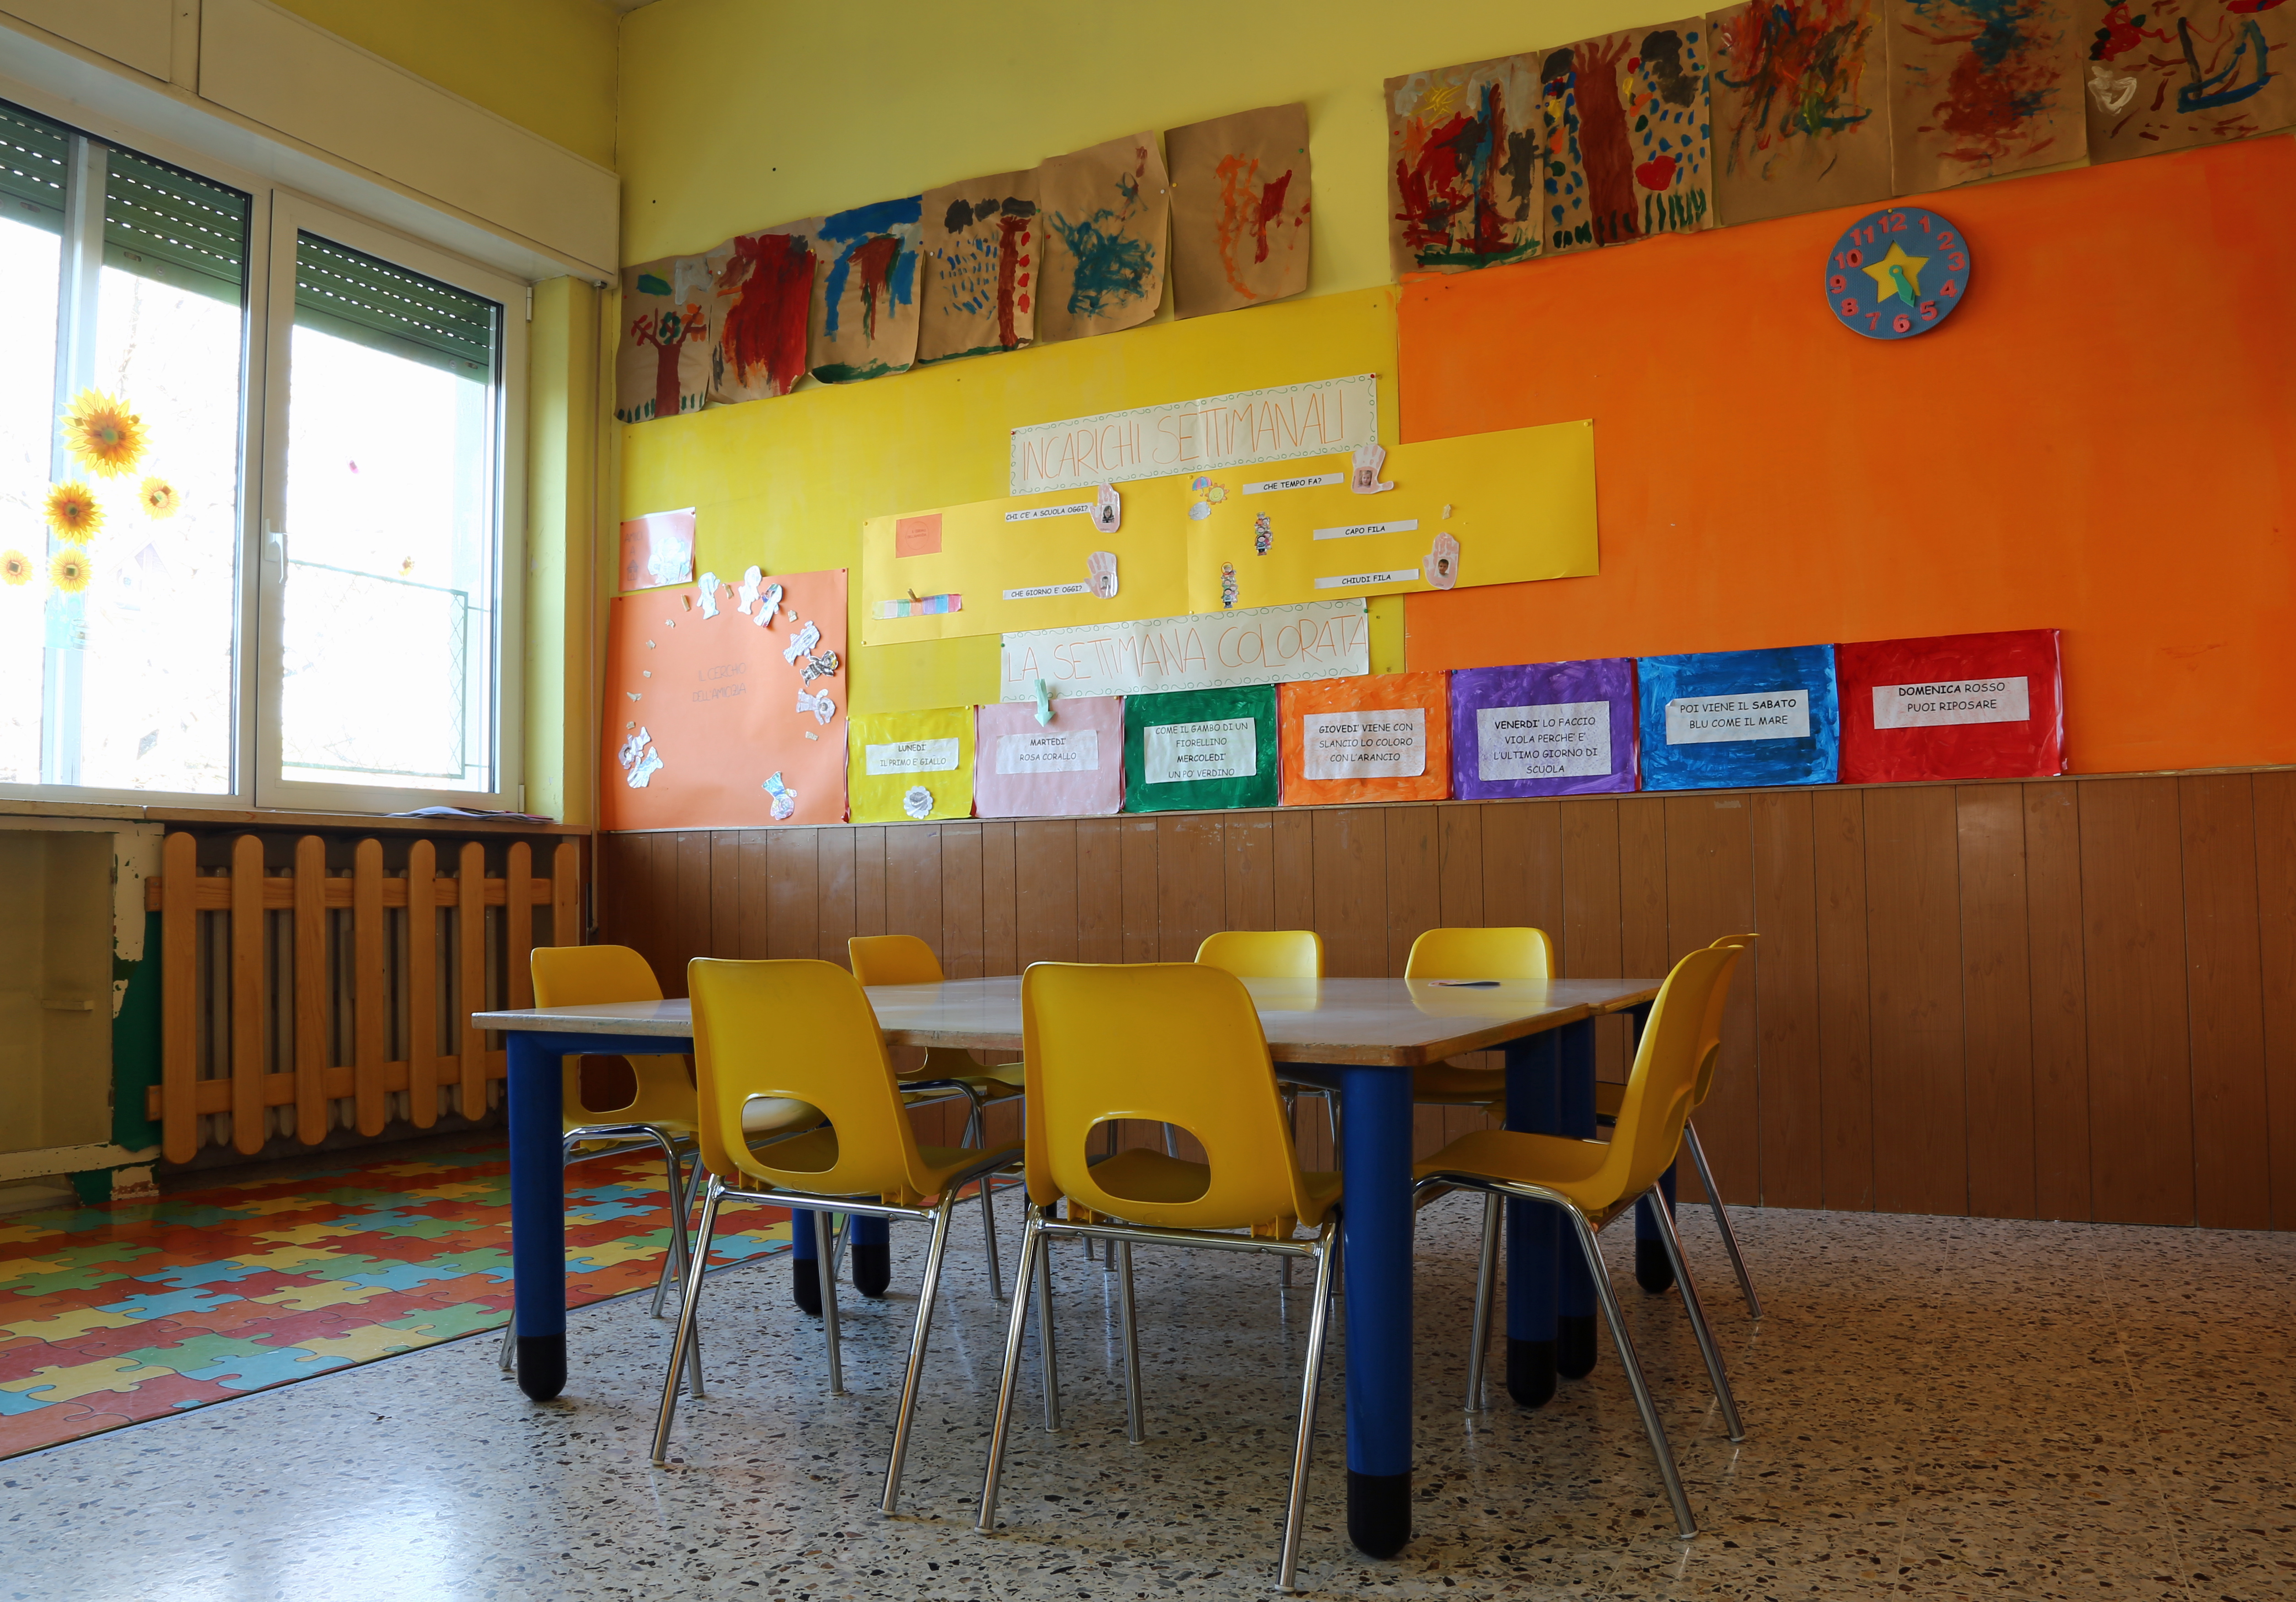 Kindergarten classroom with chairs and table with drawings.